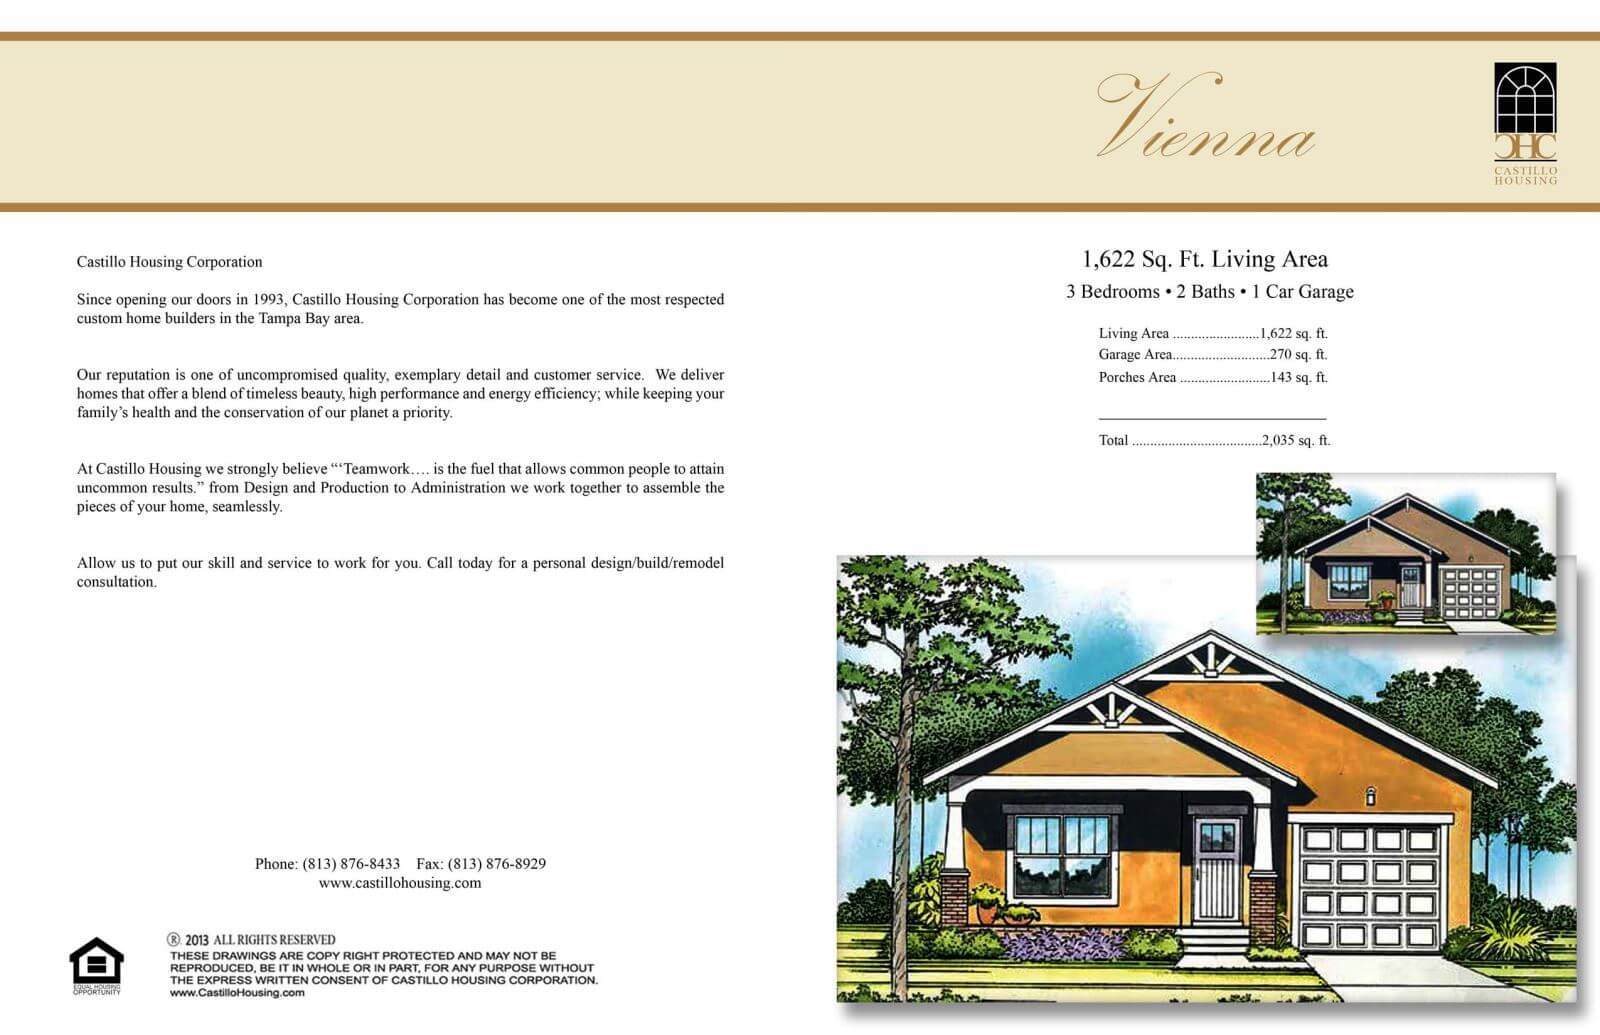 Floor Plans,1,001 SQ FT TO 2,000 SQ FT,1007